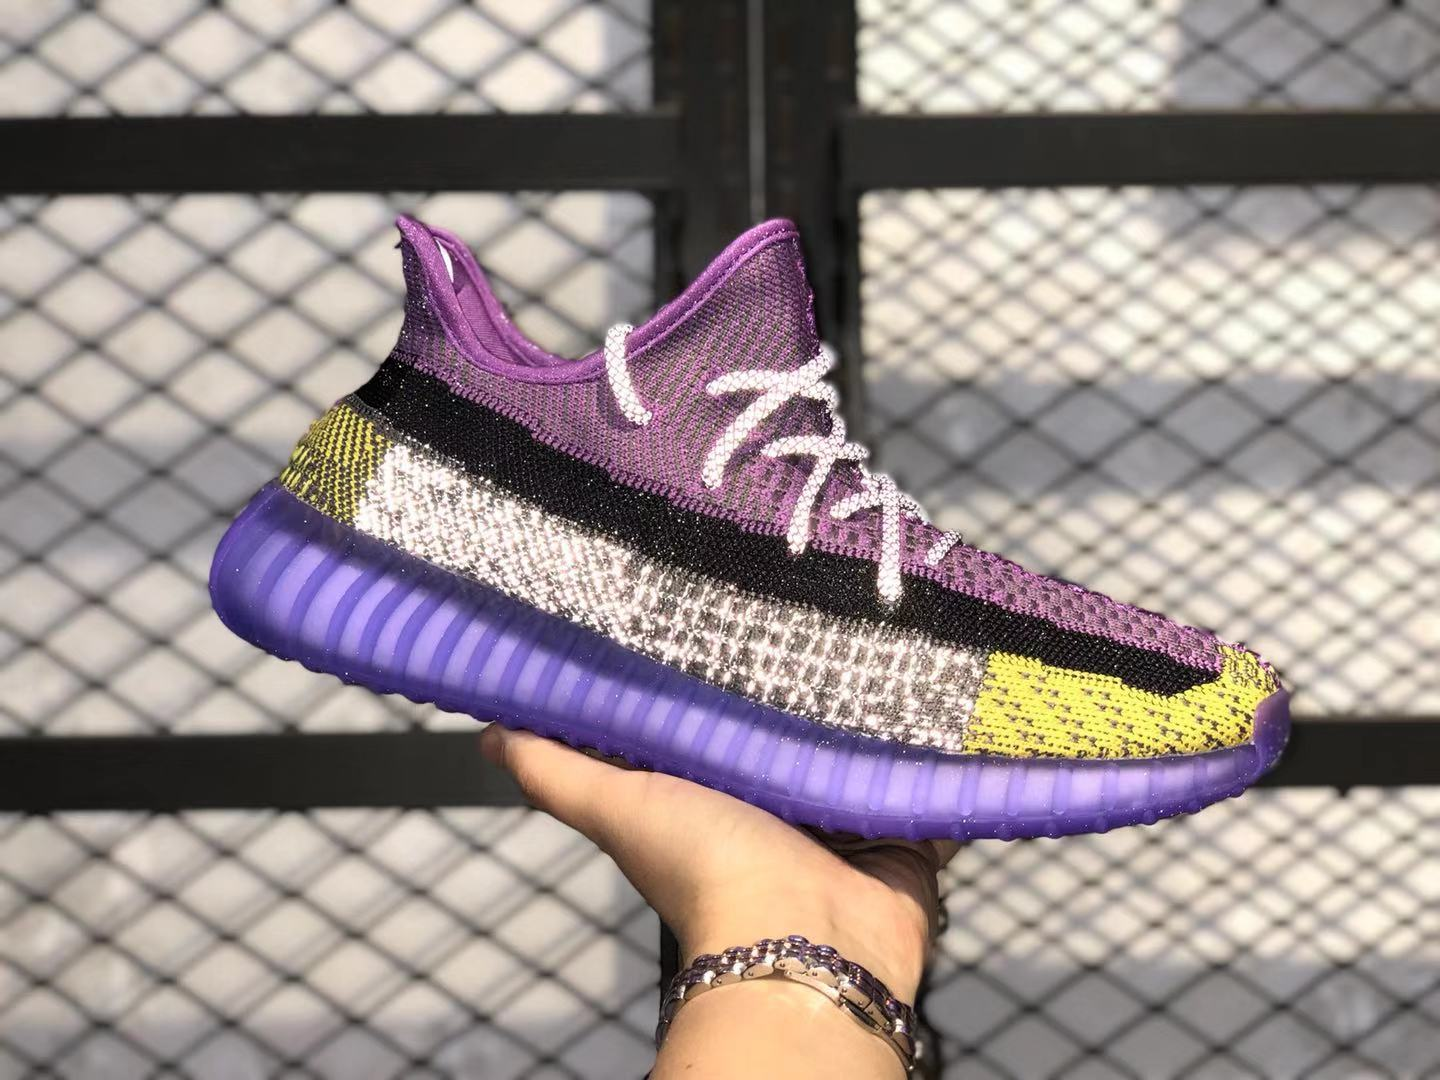 Hot Sale Adidas Yeezy Boost 350 V2 EG5298 Multi-Color Women's Running Shoes